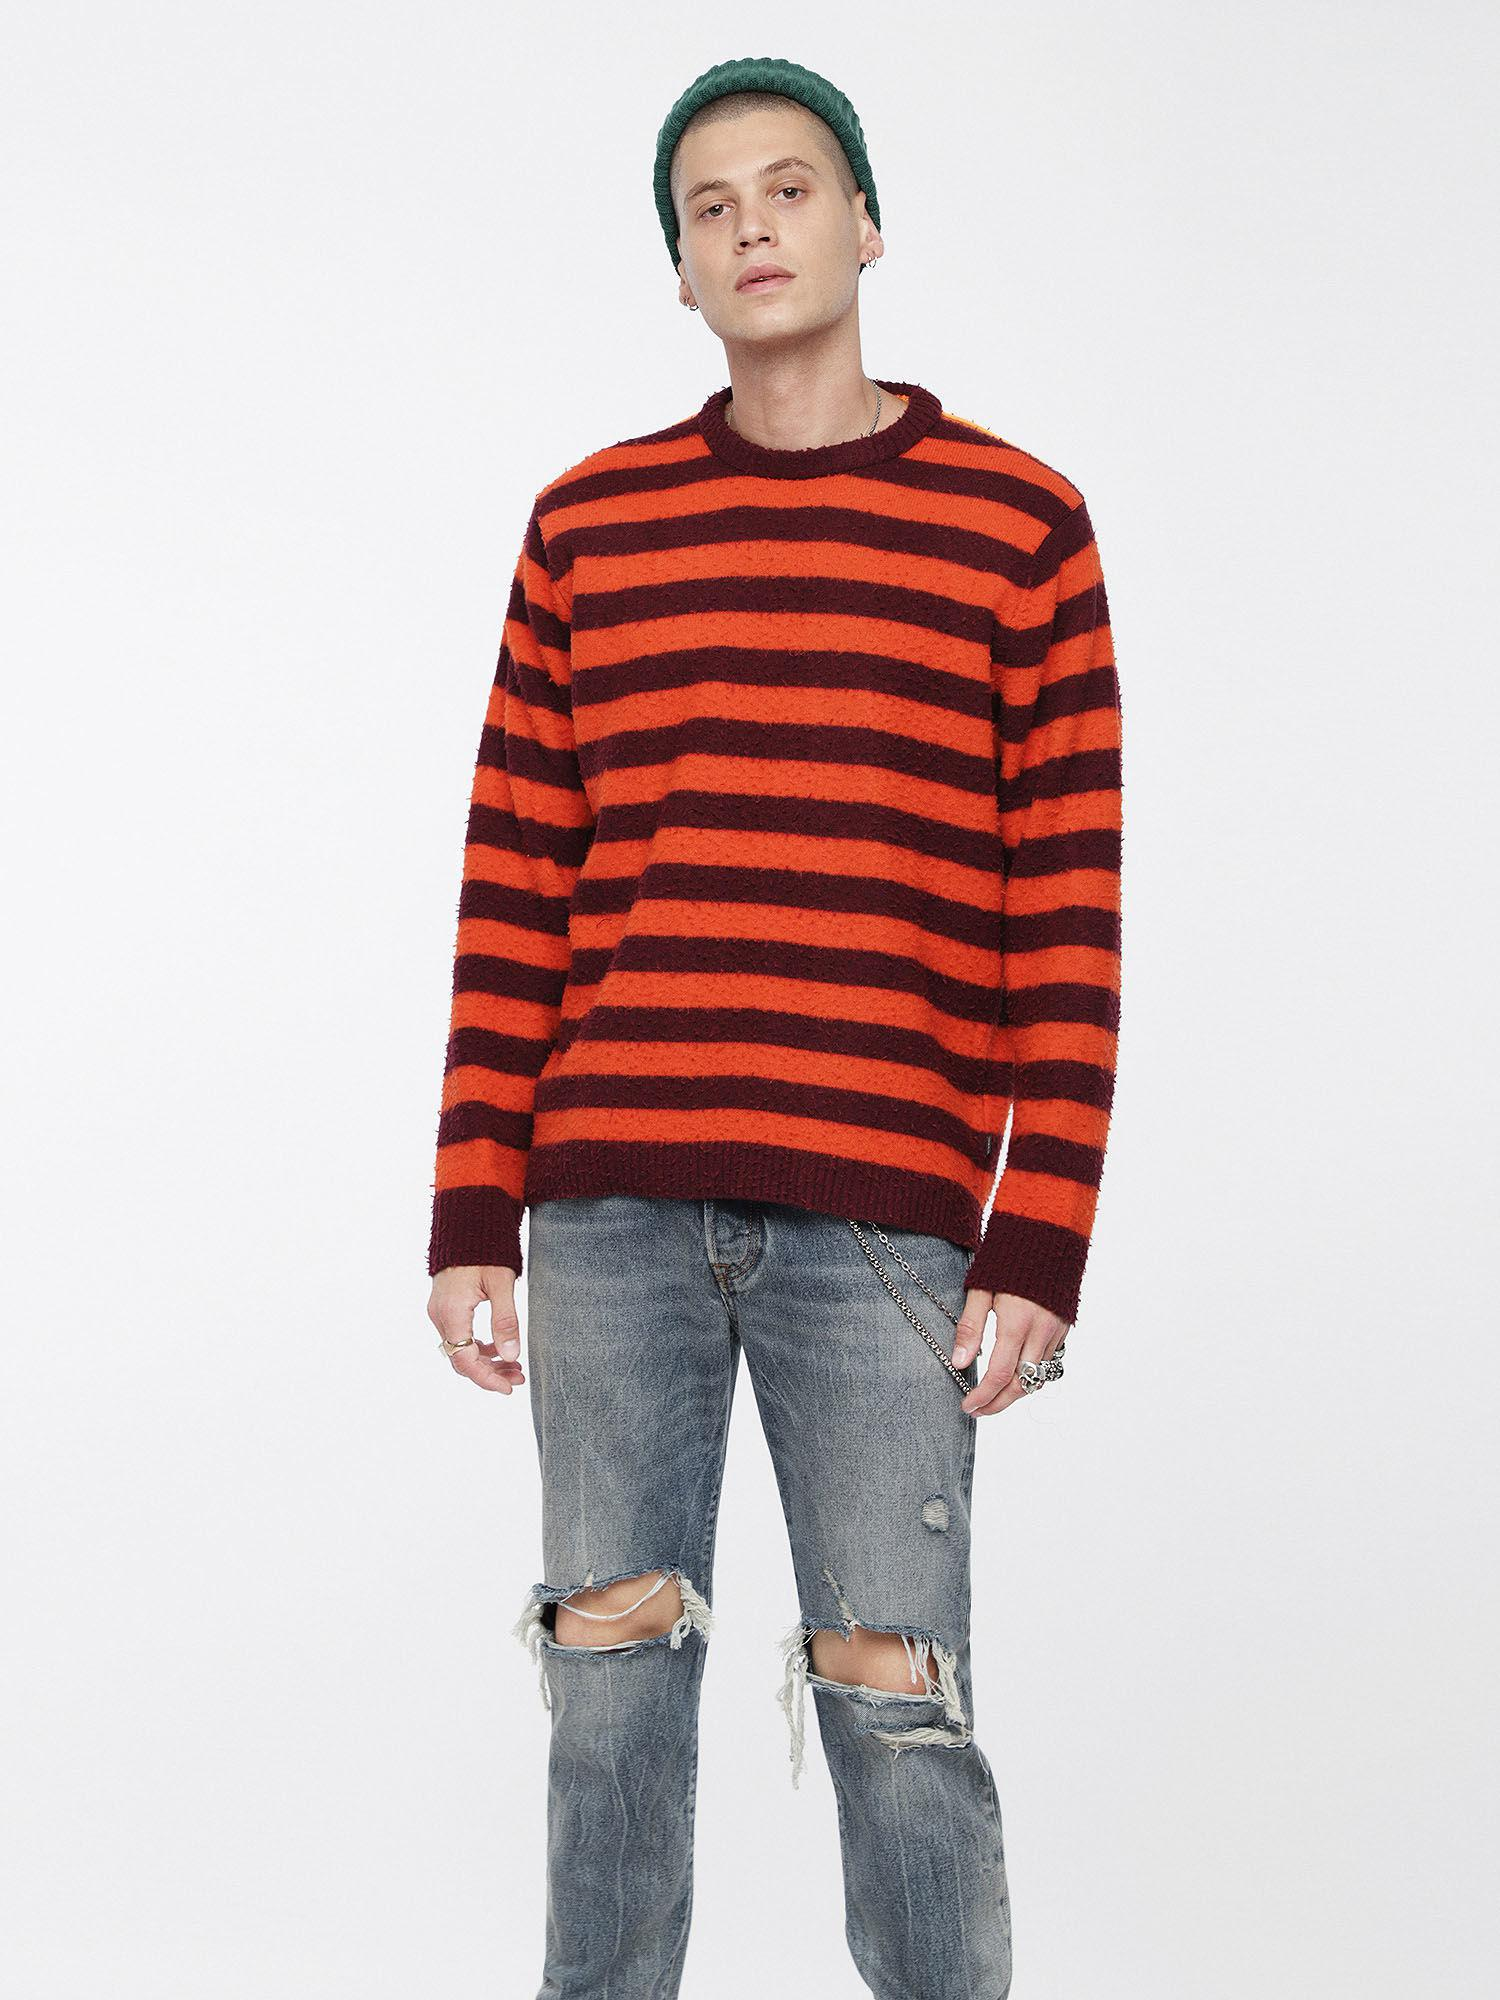 Lyst - Diesel Wool Blend Sweater With Pilled Effect in Orange for Men 9591039c651f